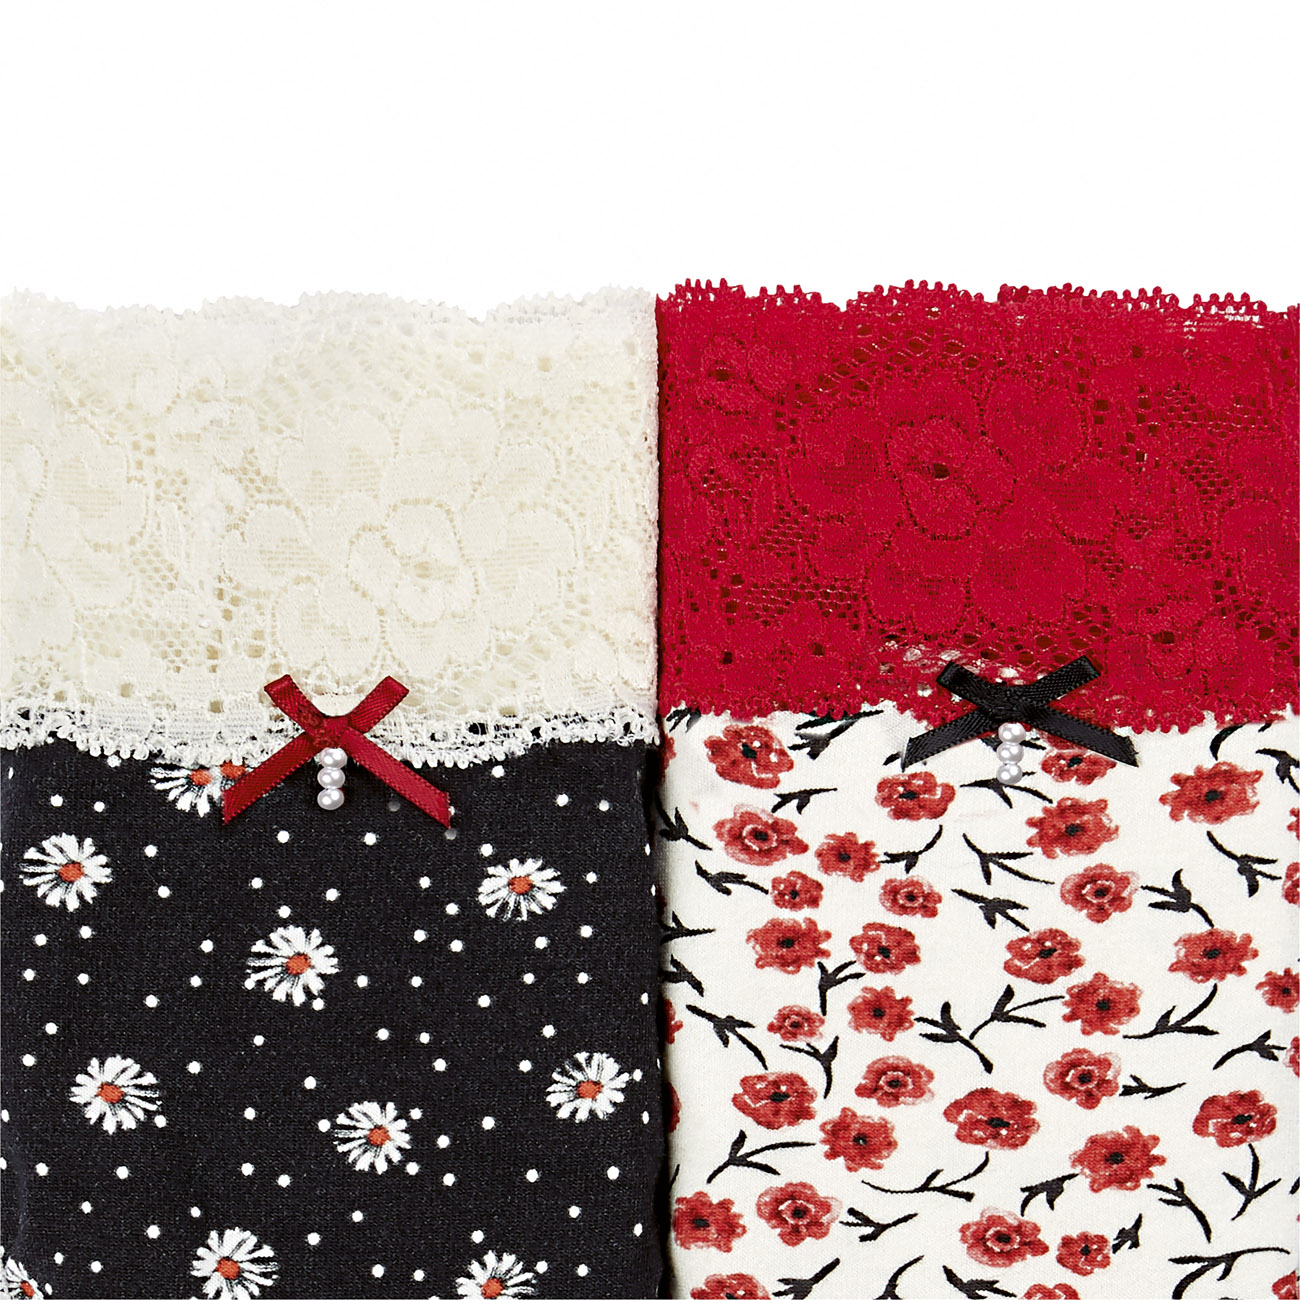 Tangas JANIRA COQUETTES COTTON LACE BLOOMING DAY Comprar Online Bigarte